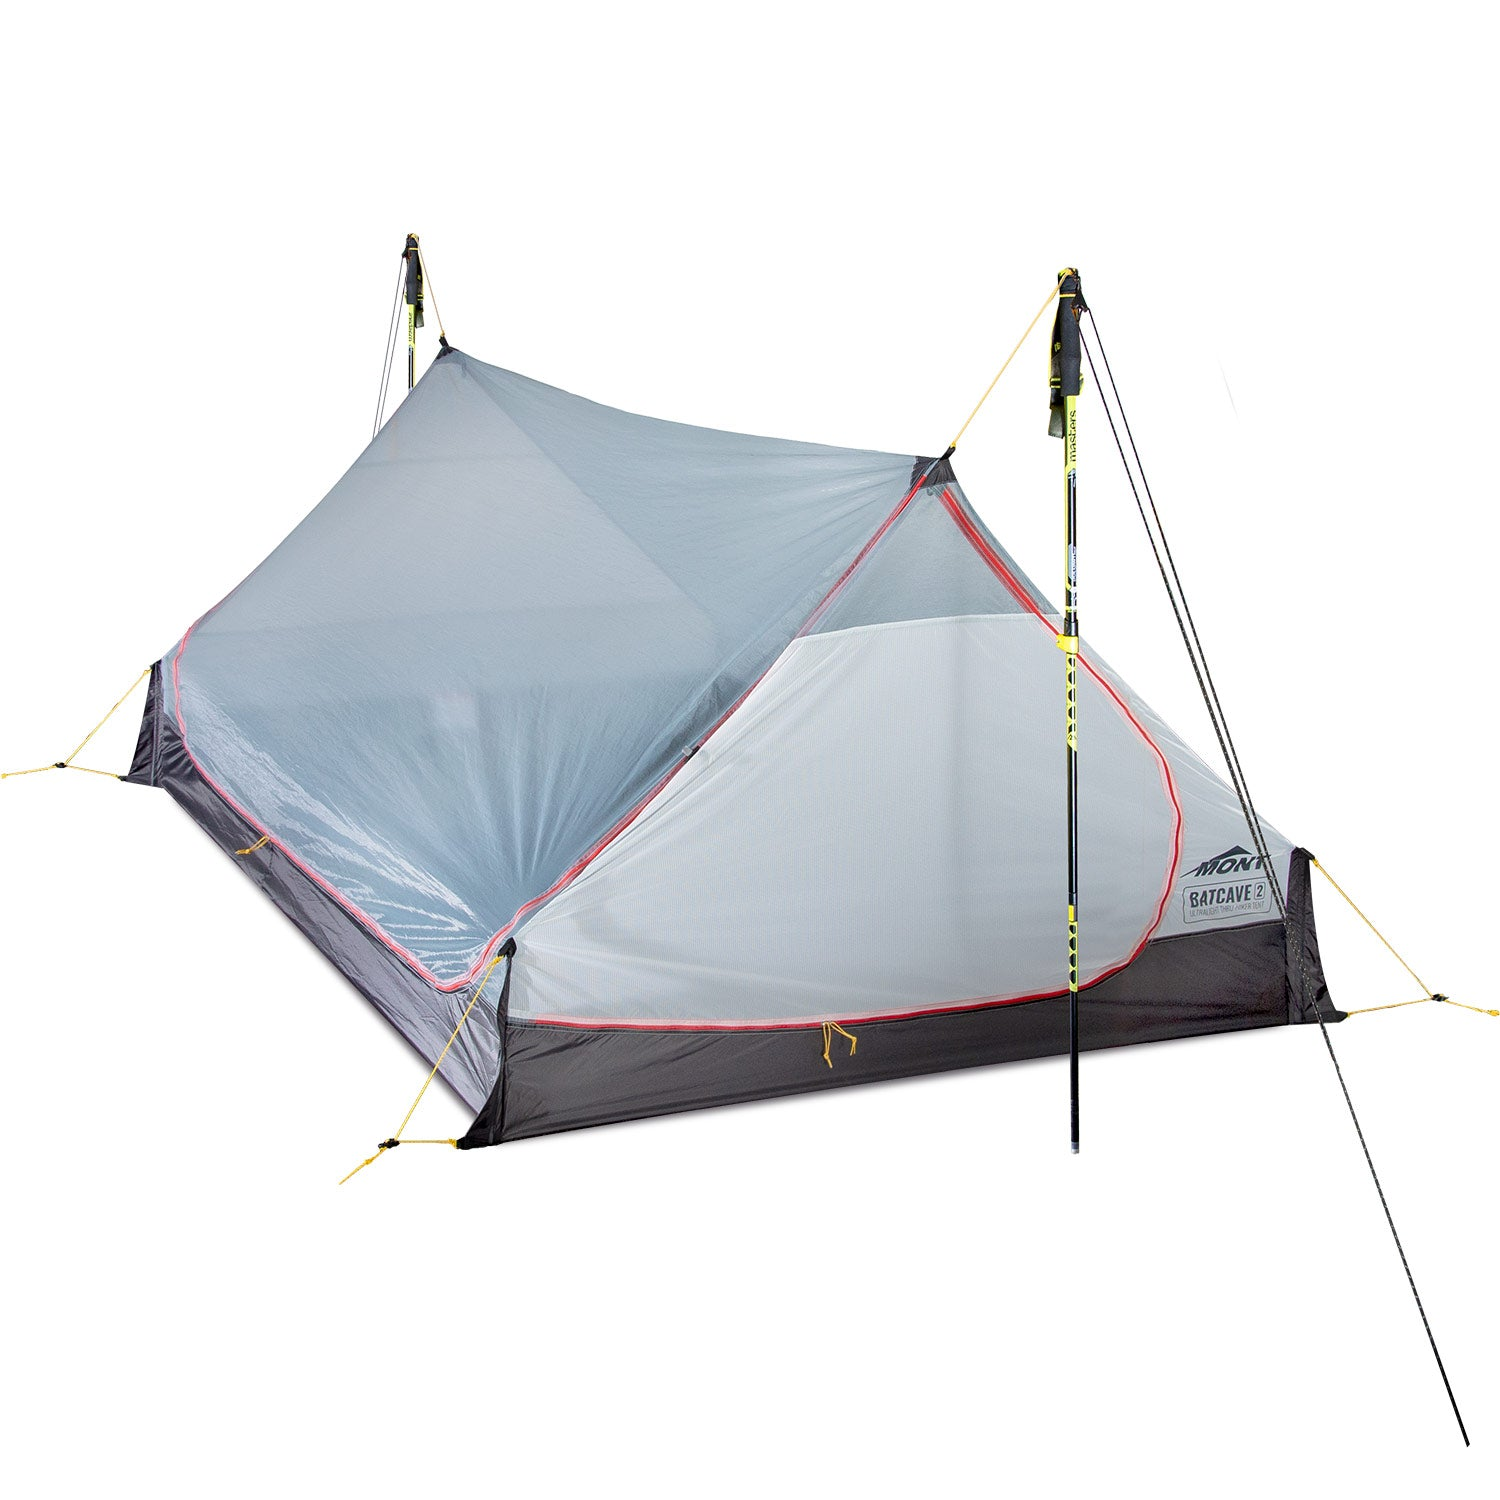 Batcave 2 Ultralight Thru-Hiker Tent